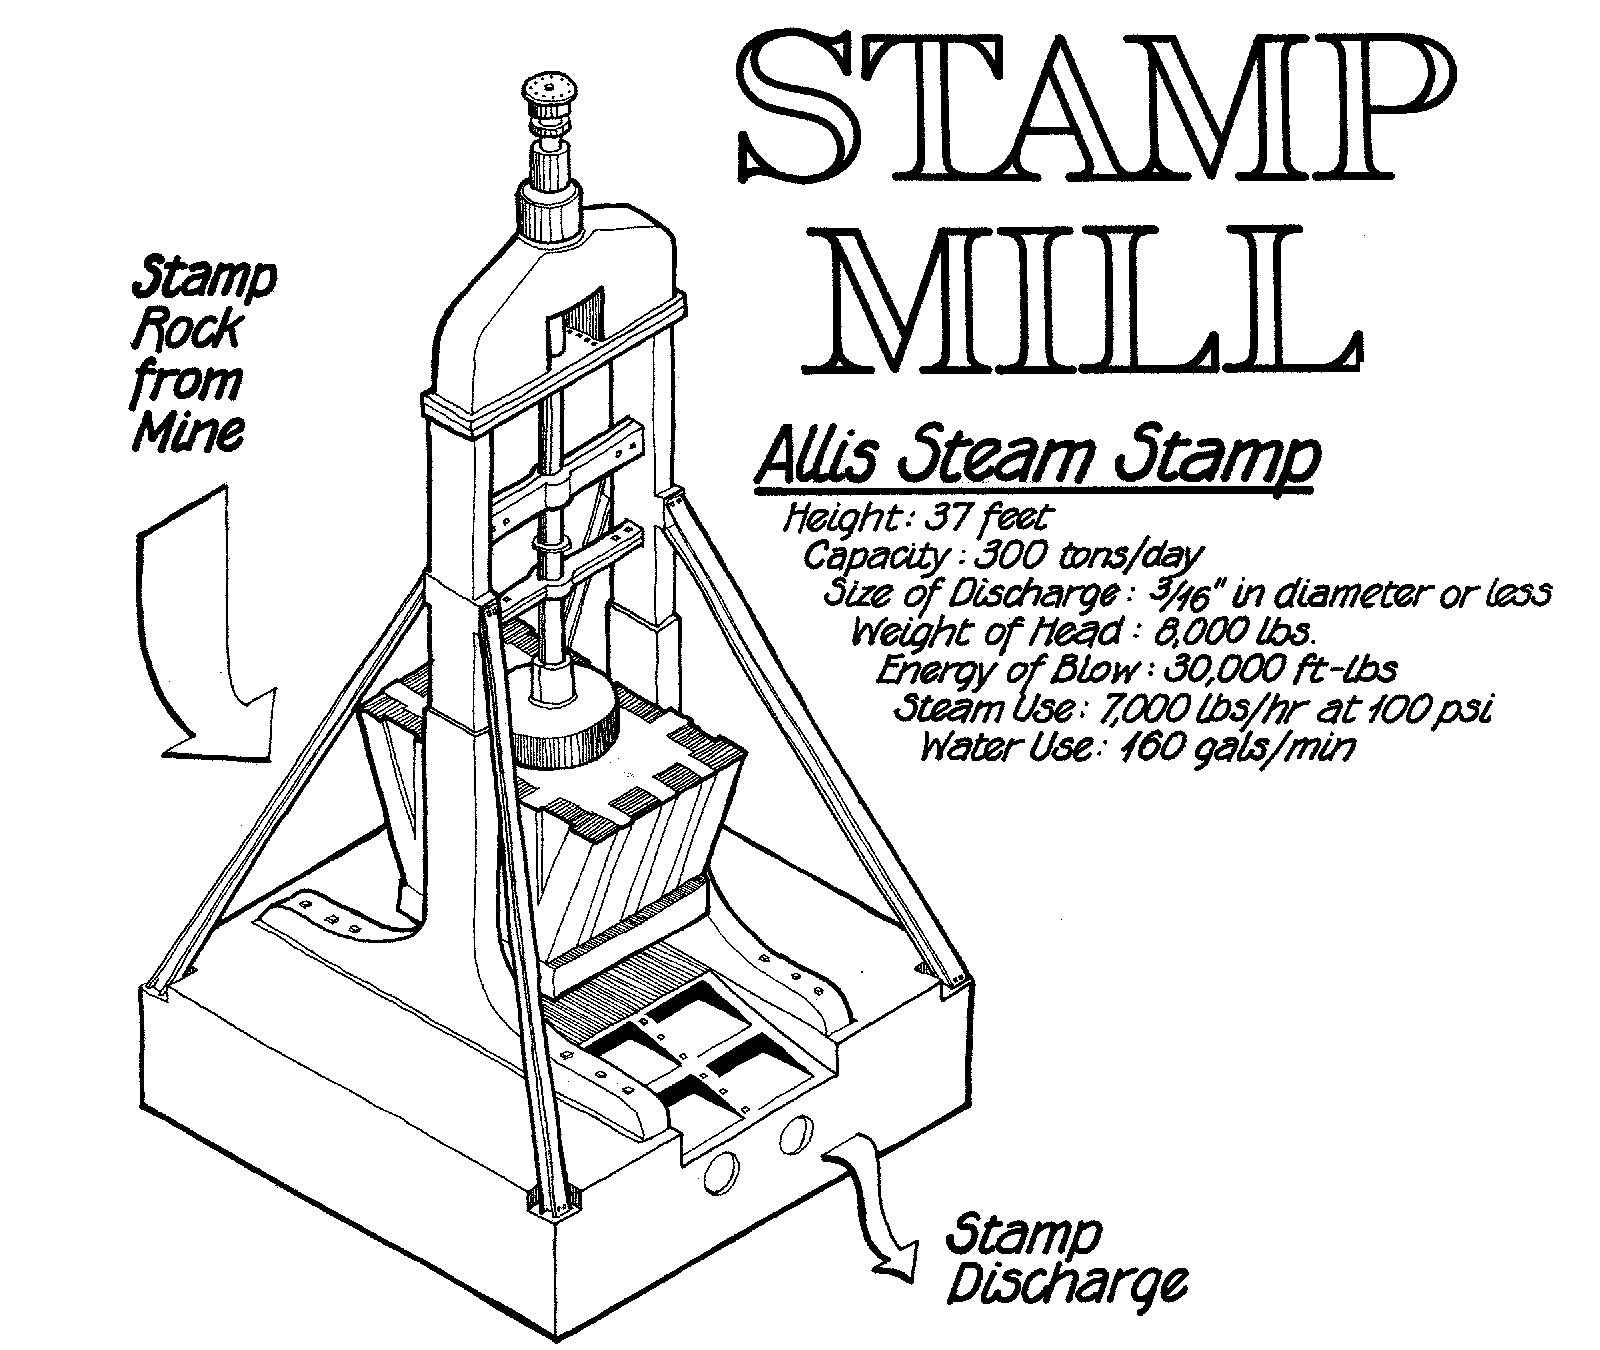 Stamp Mill Wikipedia